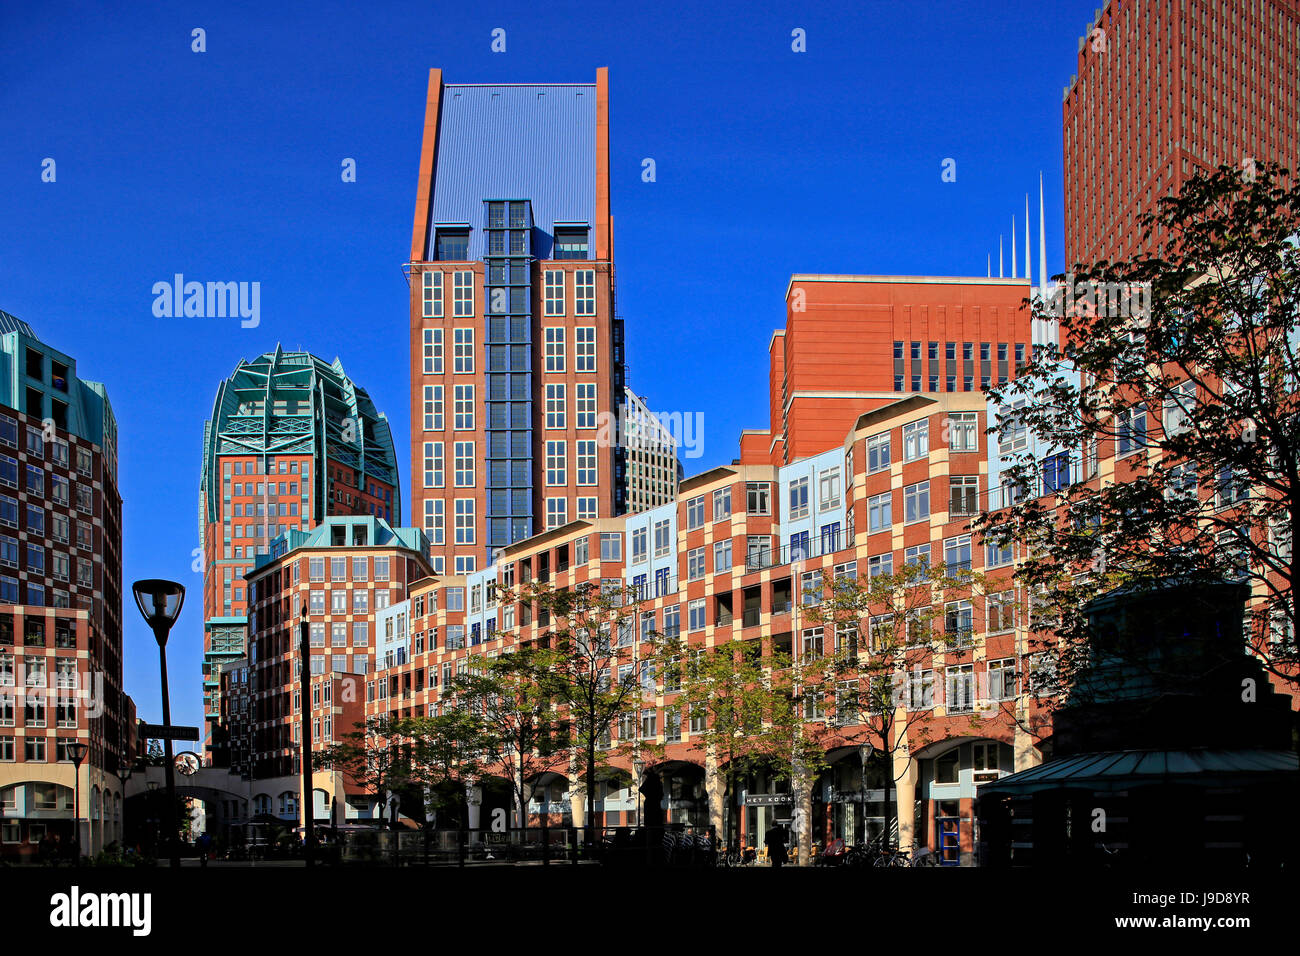 Business District in The Hague, South Holland, Netherlands, Europe Stock Photo